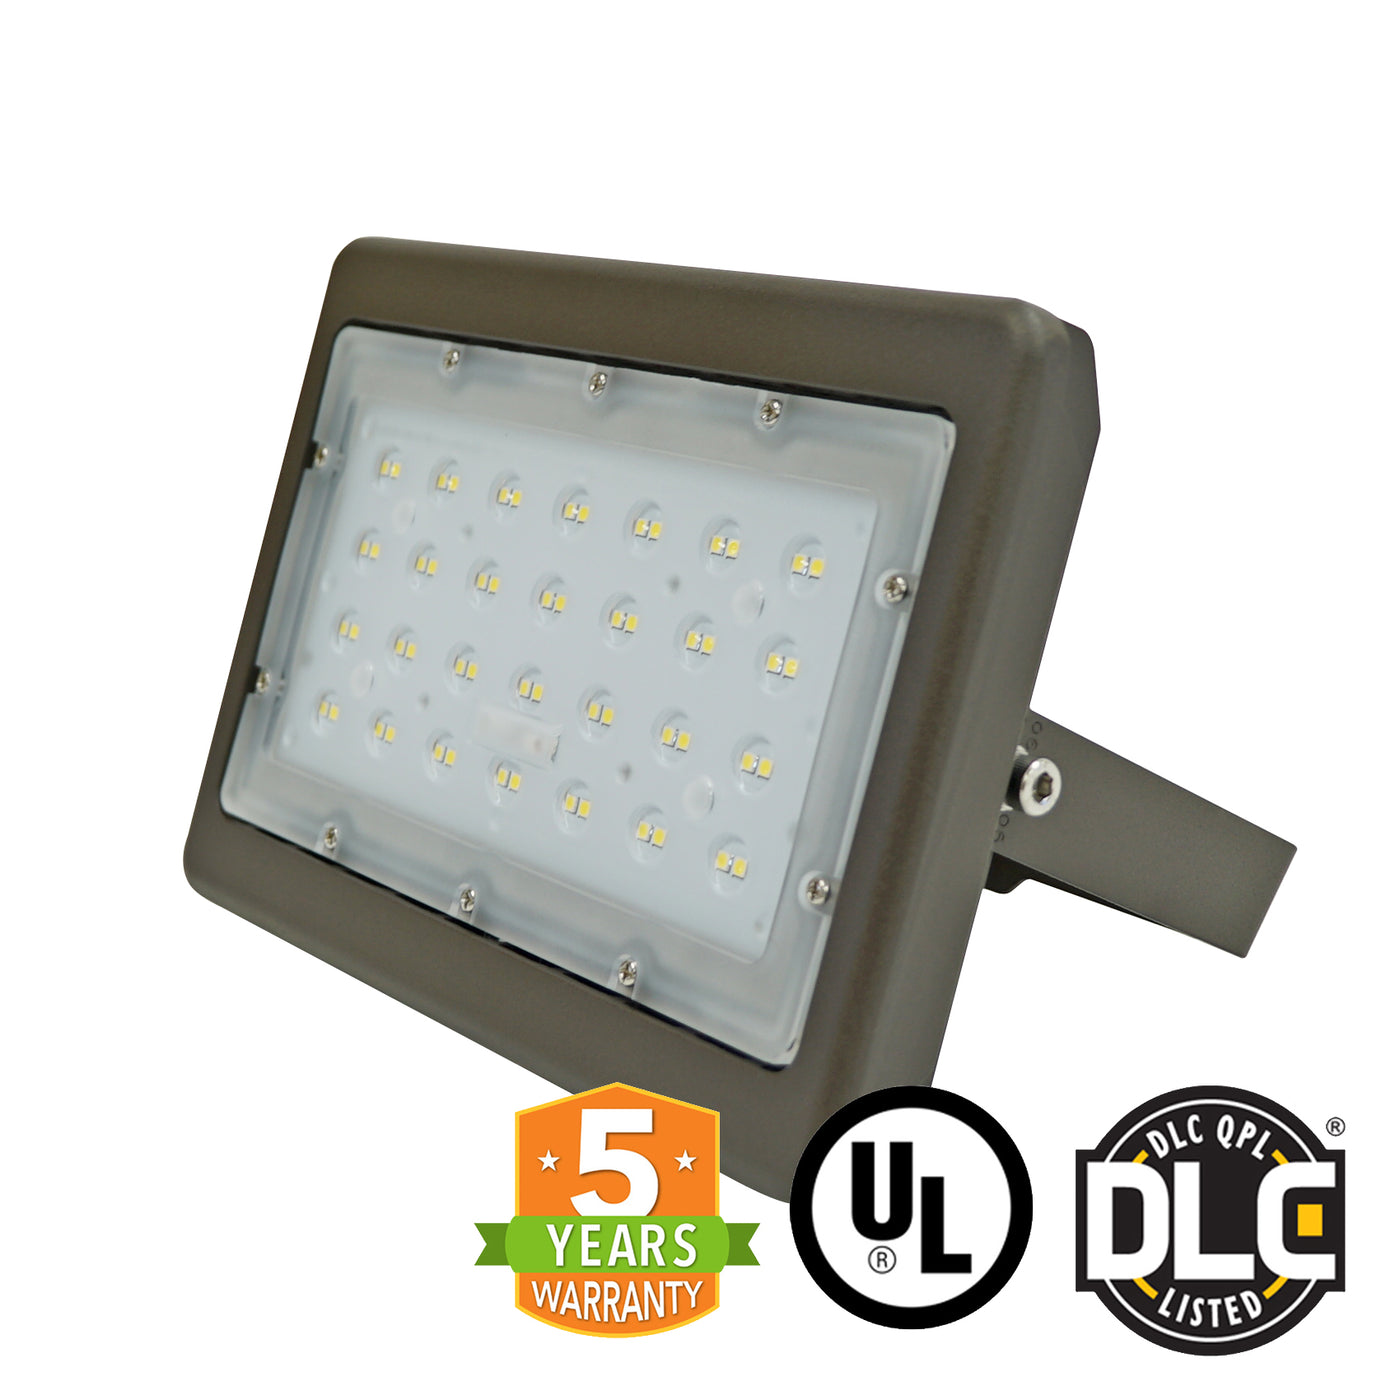 Led Flood Light Noise: 5 Year Warranty